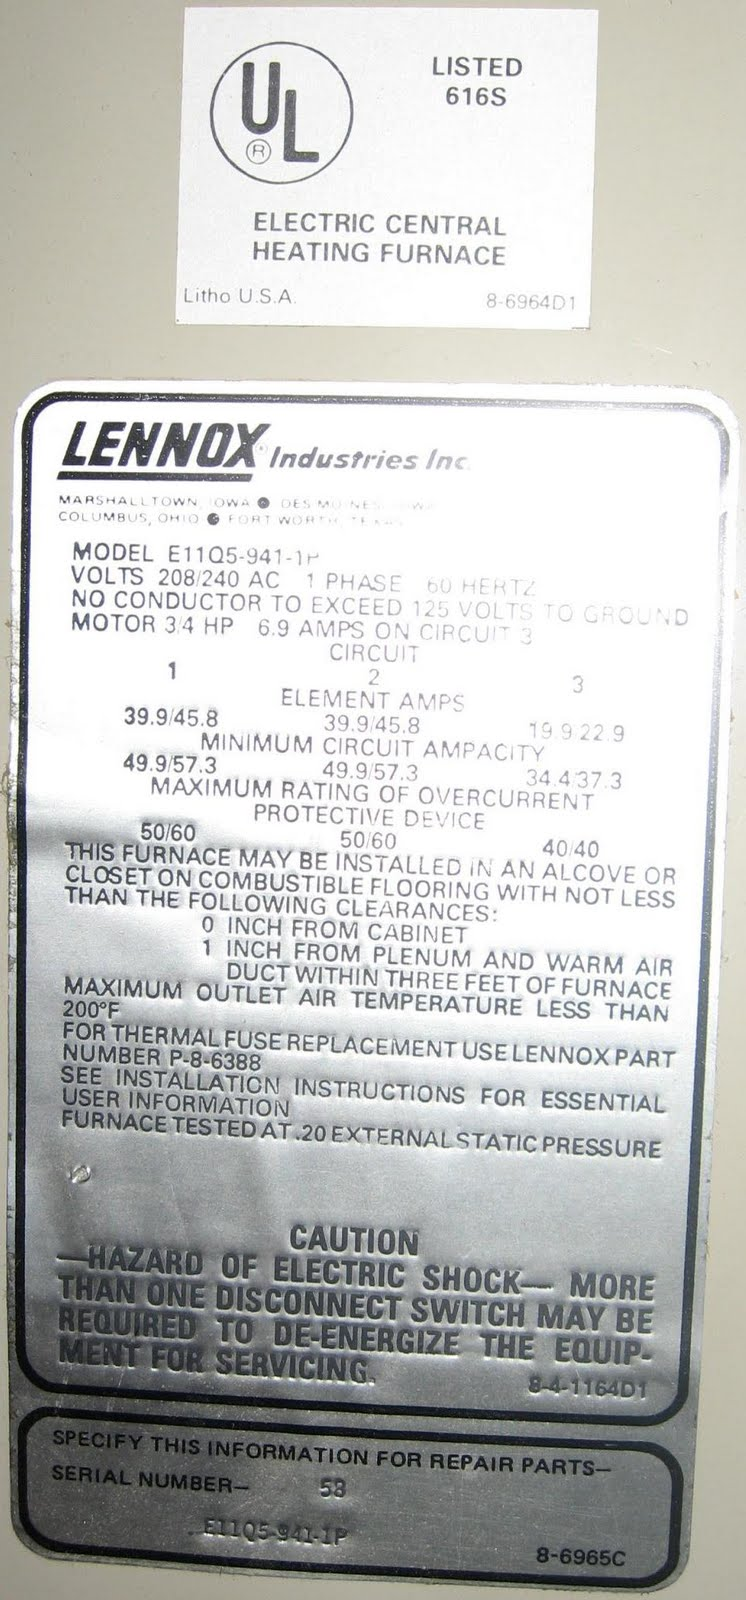 Lennox Gcs16 060 Manual